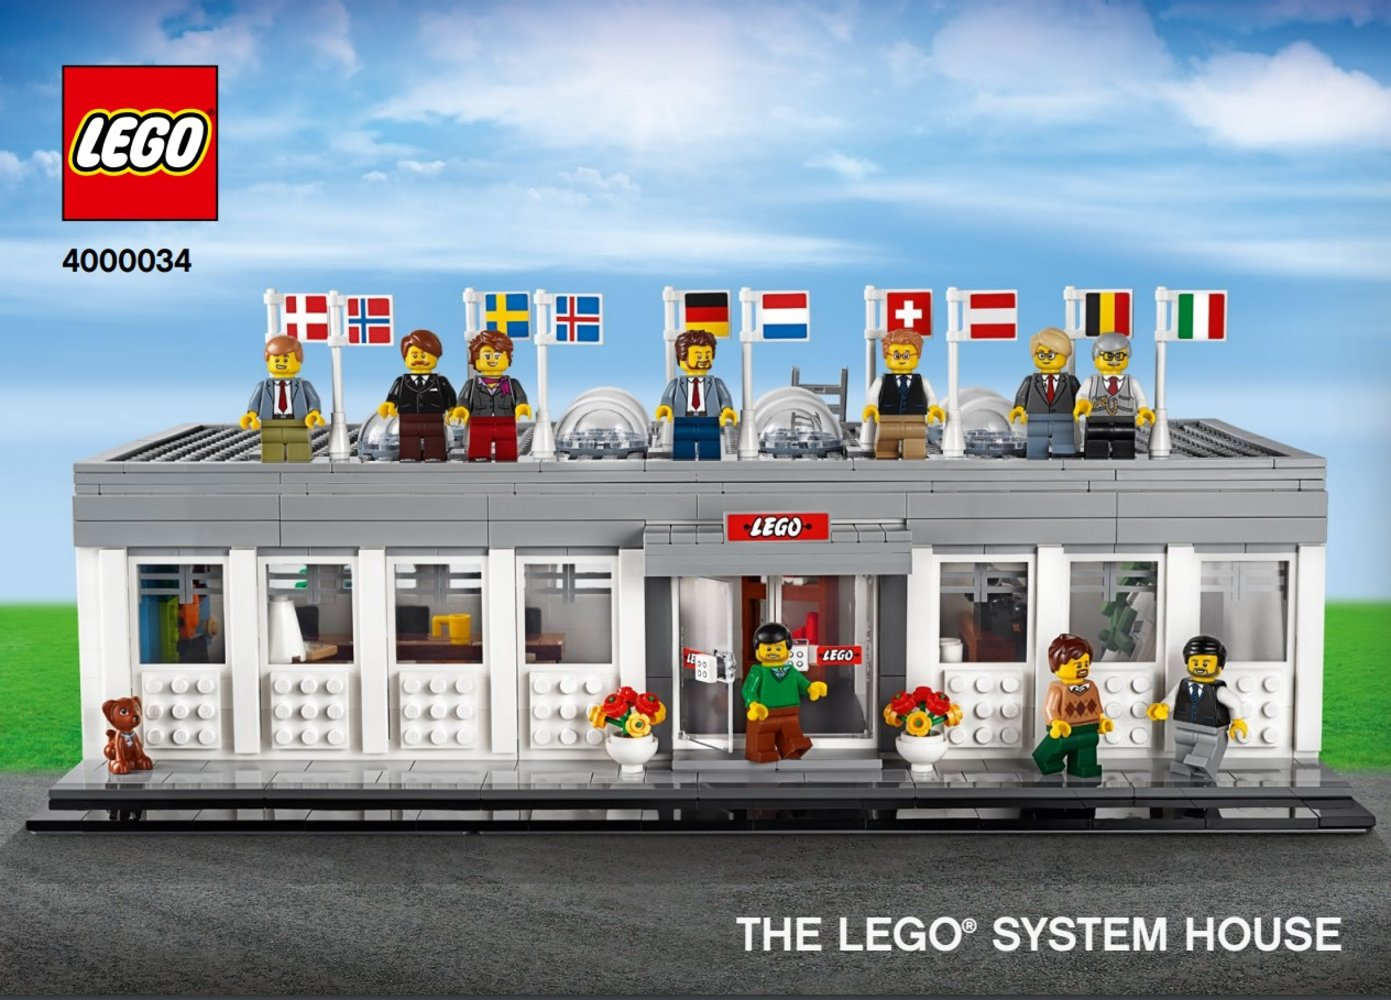 The LEGO System House